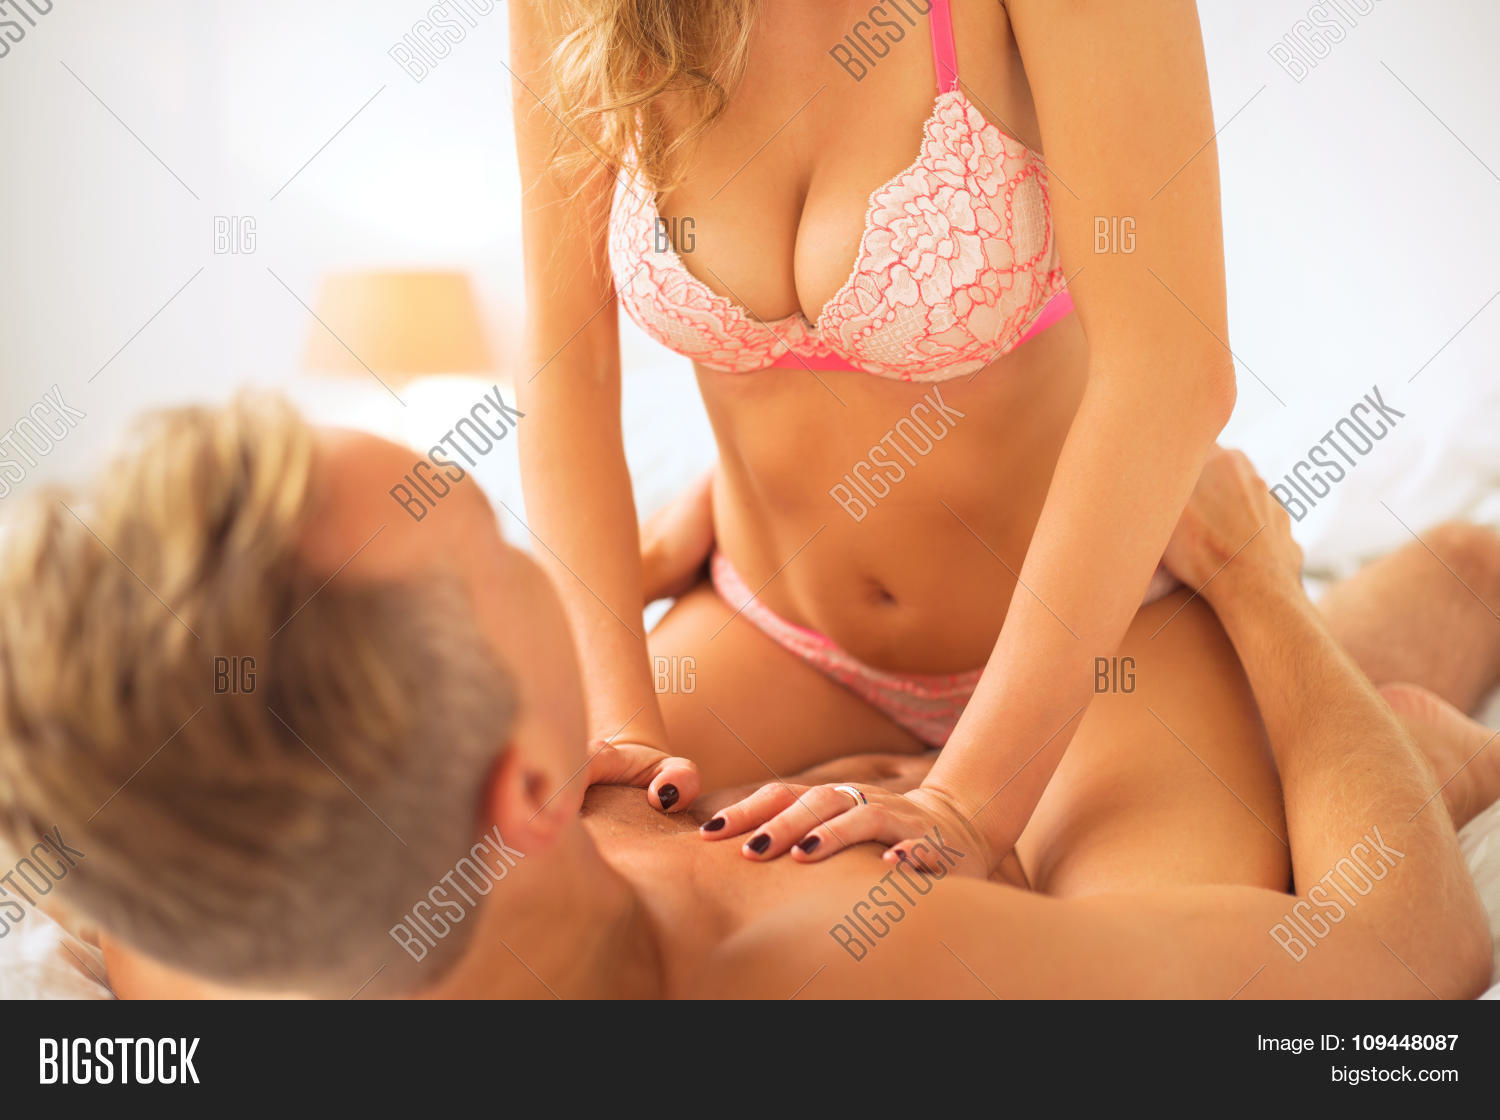 Man And Woman Having Erotic Foreplay